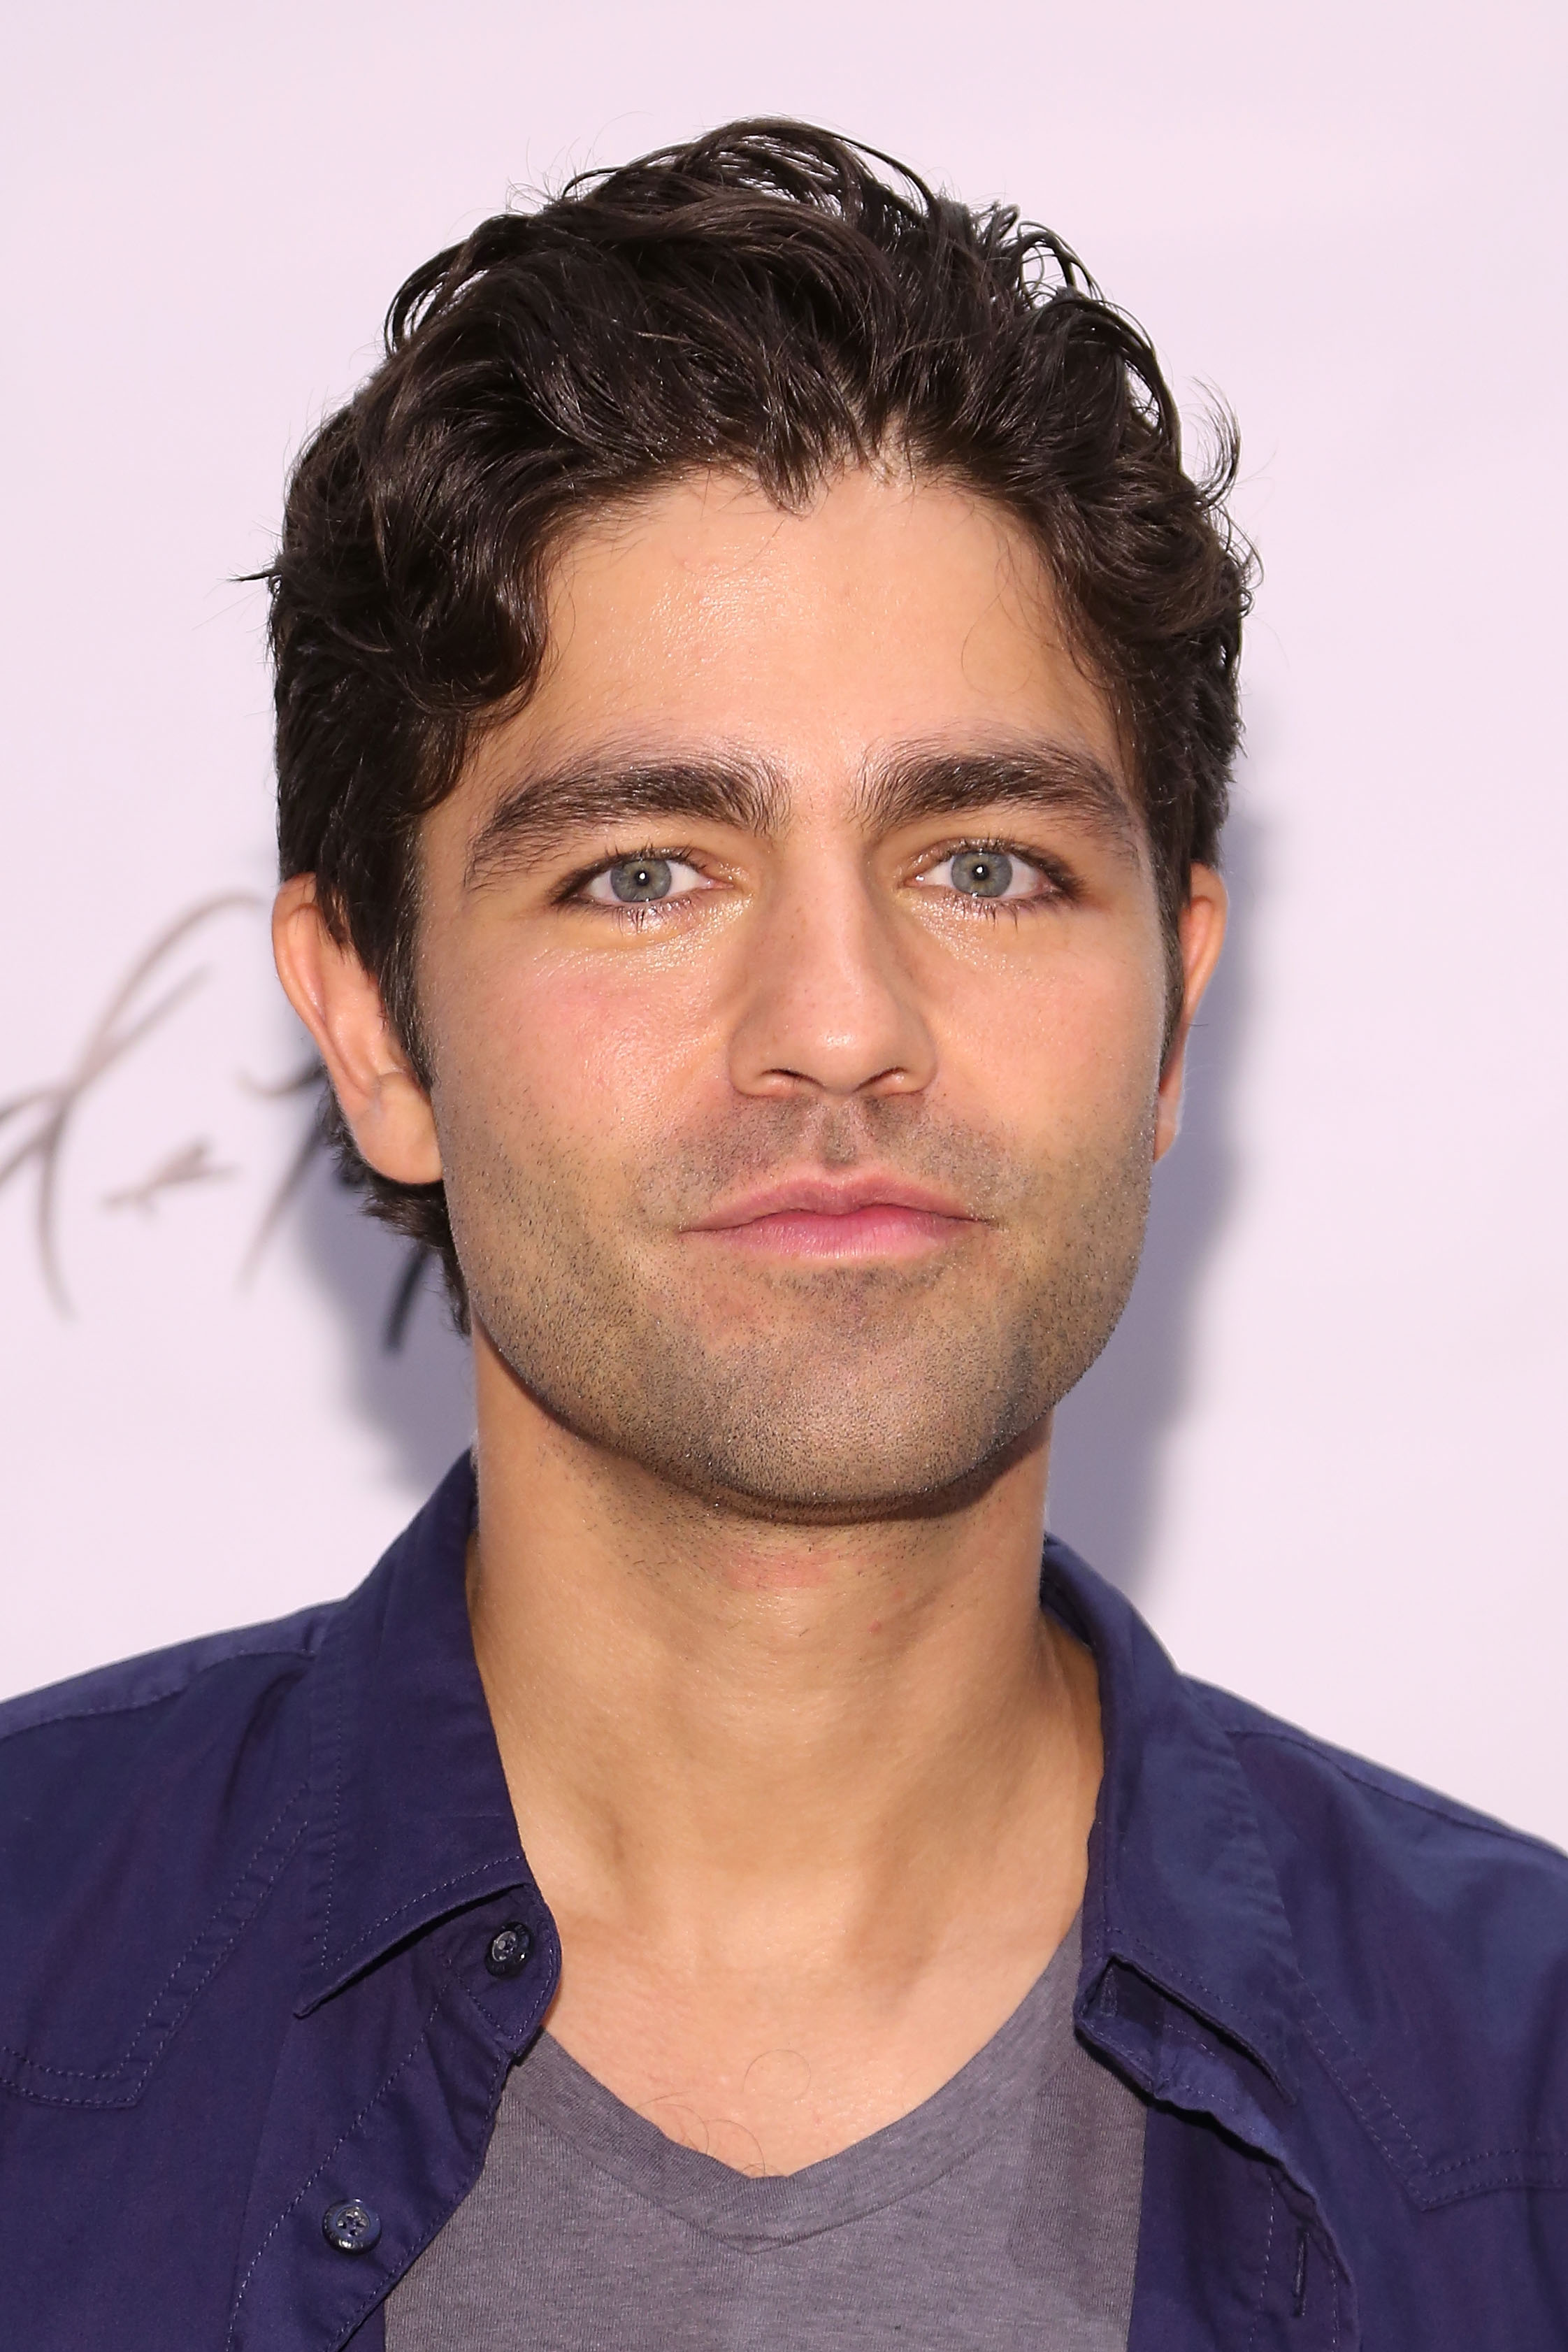 Actor Adrian Grenier at Lord & Taylor on May 11, 2015 in New York City.